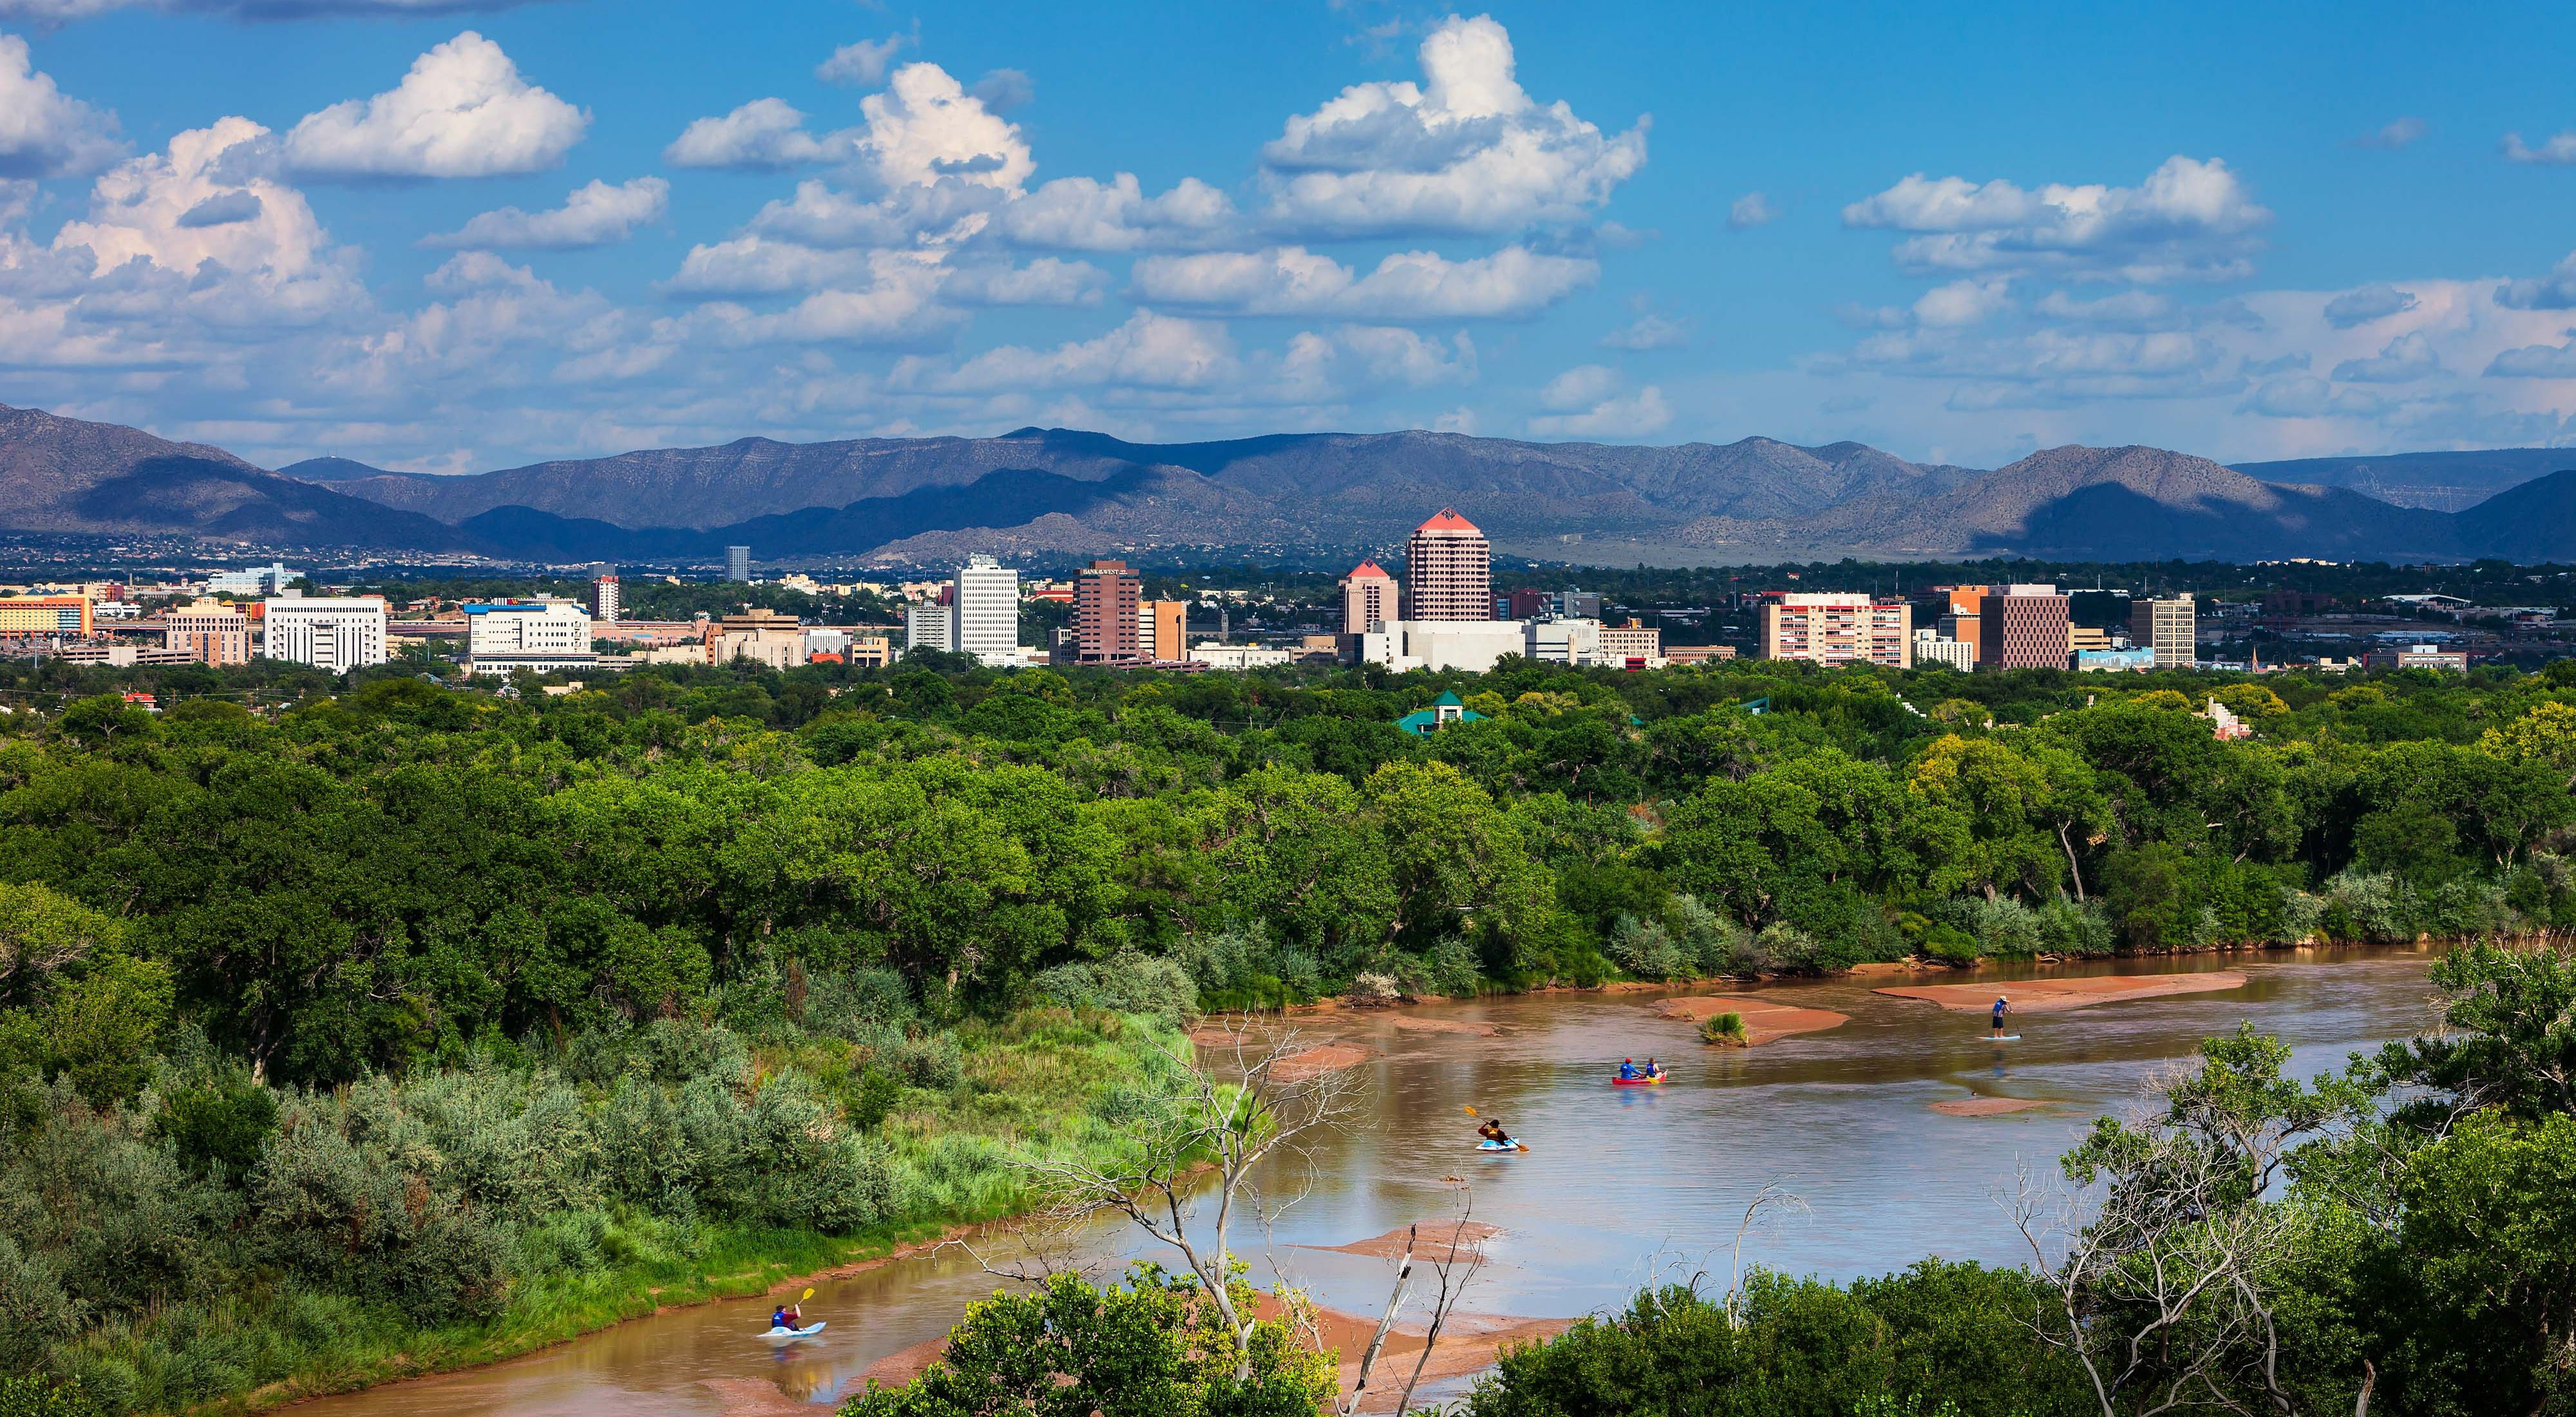 View from the Rio Grande in Albuquerque to the Sandia Mountains.